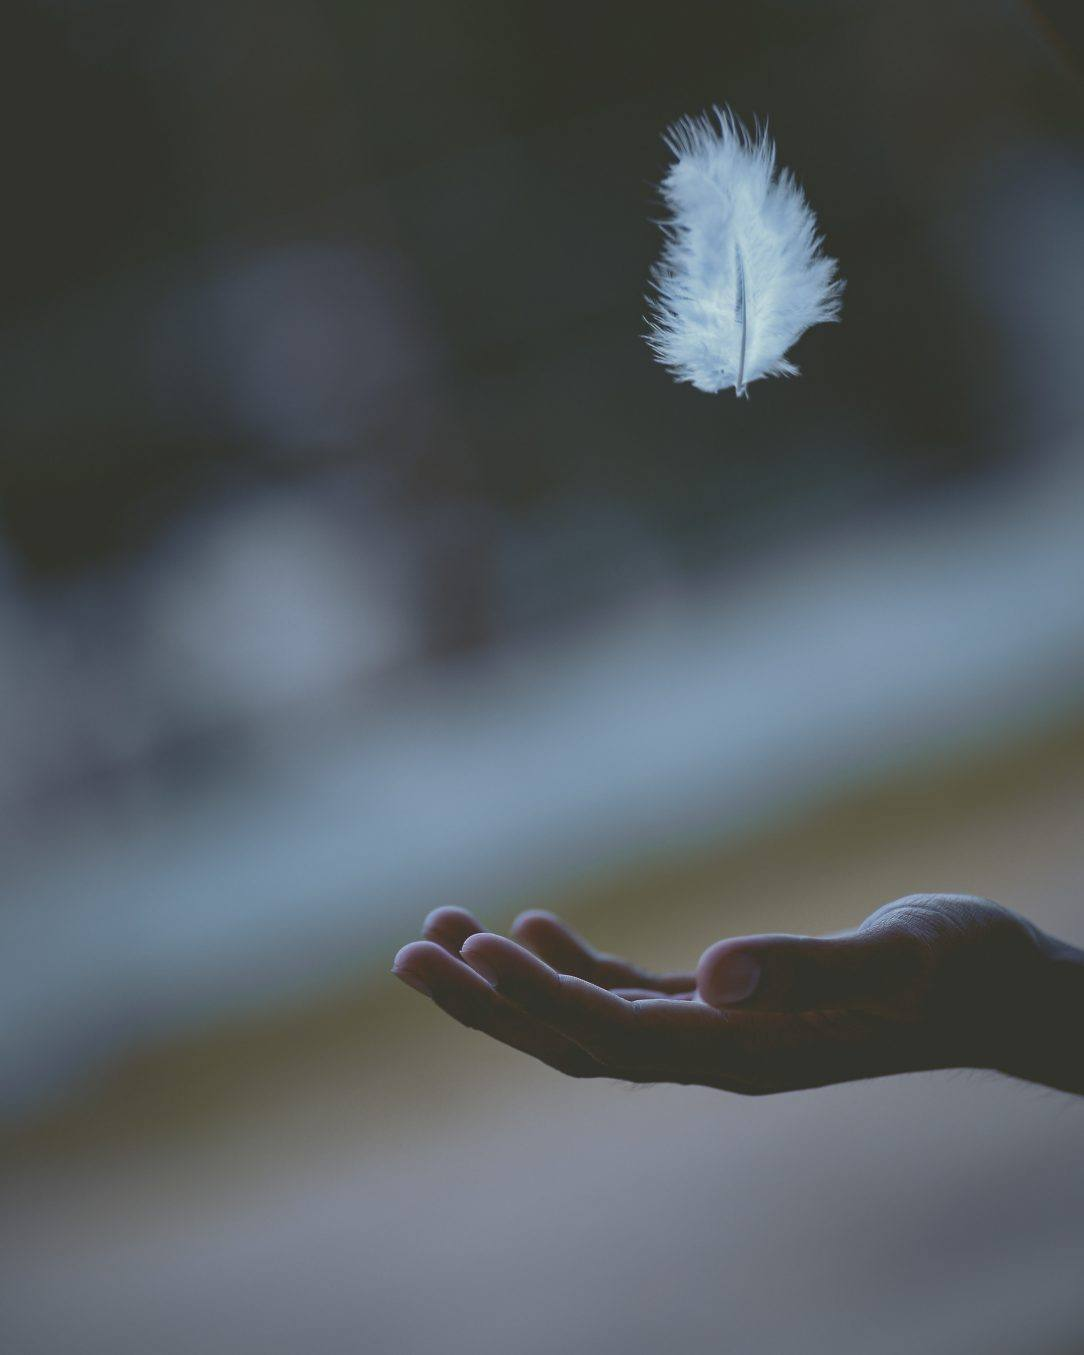 Hand catching feather surrender and empower emotional sobriety